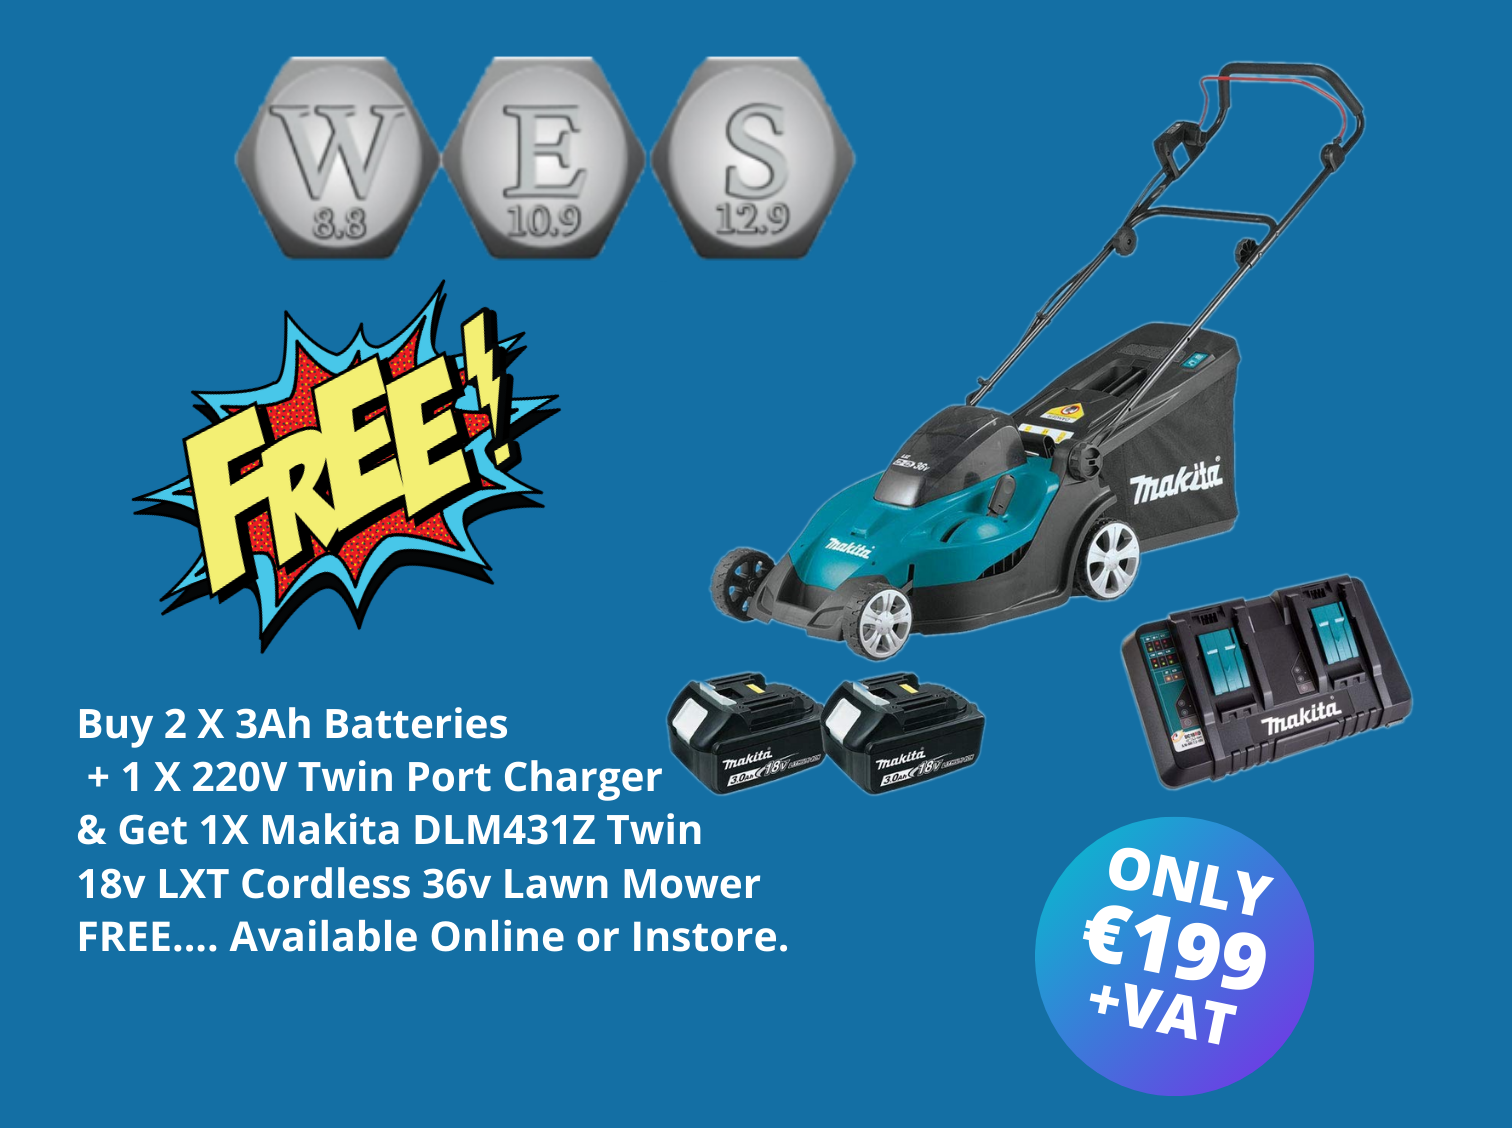 2 x MAK632G12 3.0Ah Batteries & DC18RDZP Dual Port Charger With FREE Makita DLM431PT2 18v/36v LXT Cordless Lawn Mower